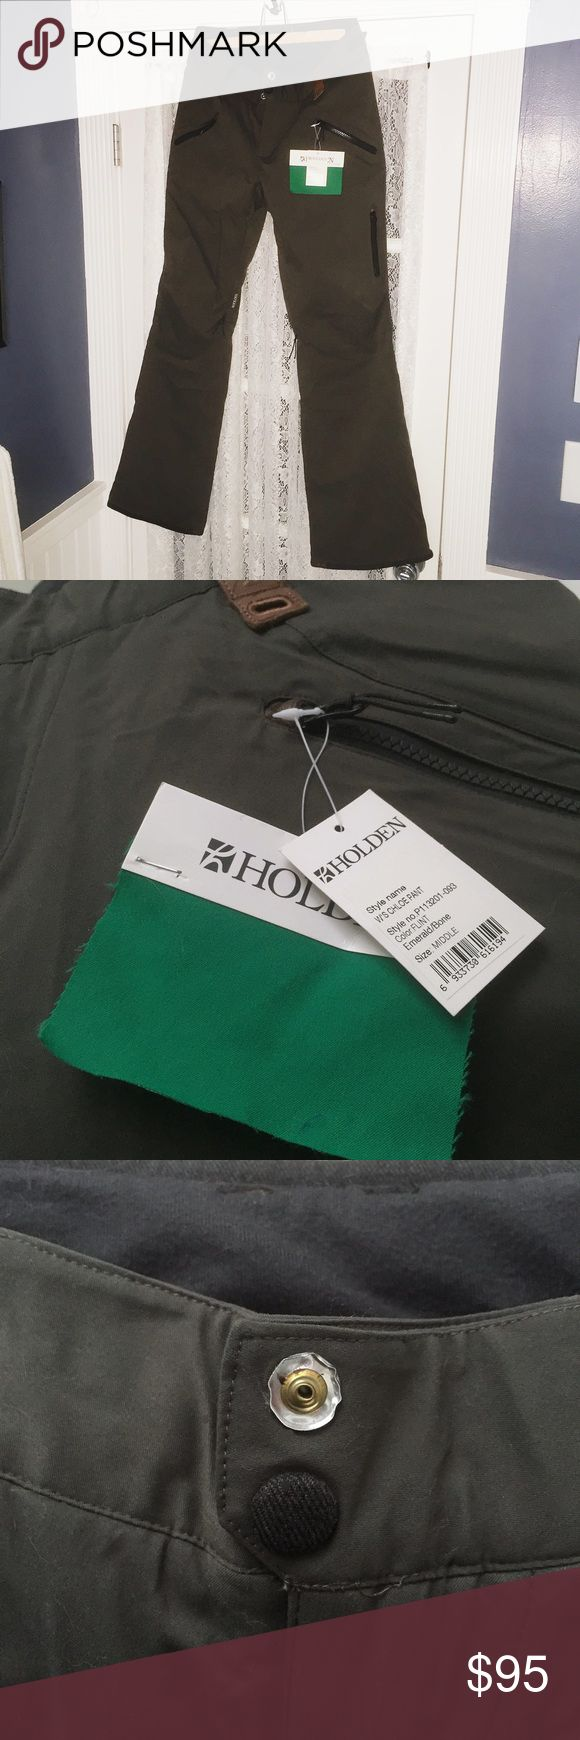 ** NWT Holden Chloe Snowboard Pants ** Brand new, with tags. Emerald/Bone color. Tailored fit, flattering! Size medium. Single blemish: the felted button face on the top waist button is missing but doesn't affect function. Not North Face, not Burton, not Oakley. Holden Pants